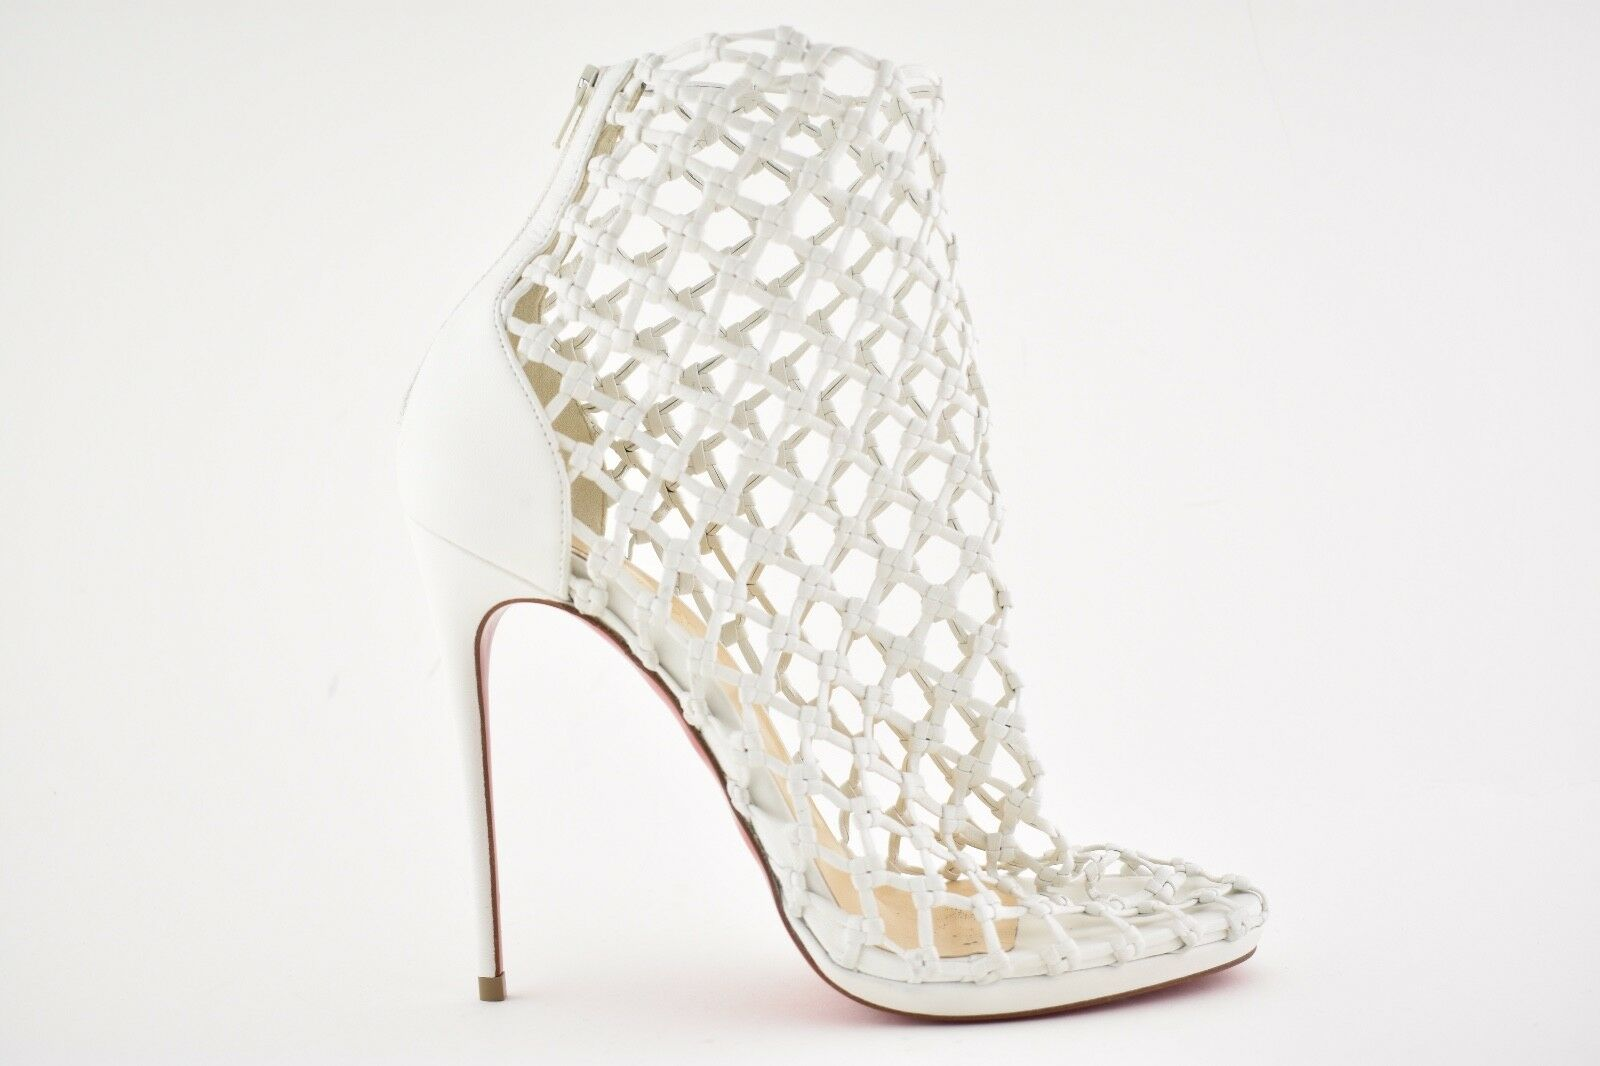 NB Christian Louboutin Porligat 120 Weiß Latte Pump Caged Boot Bootie Heel Pump Latte 36.5 66472f